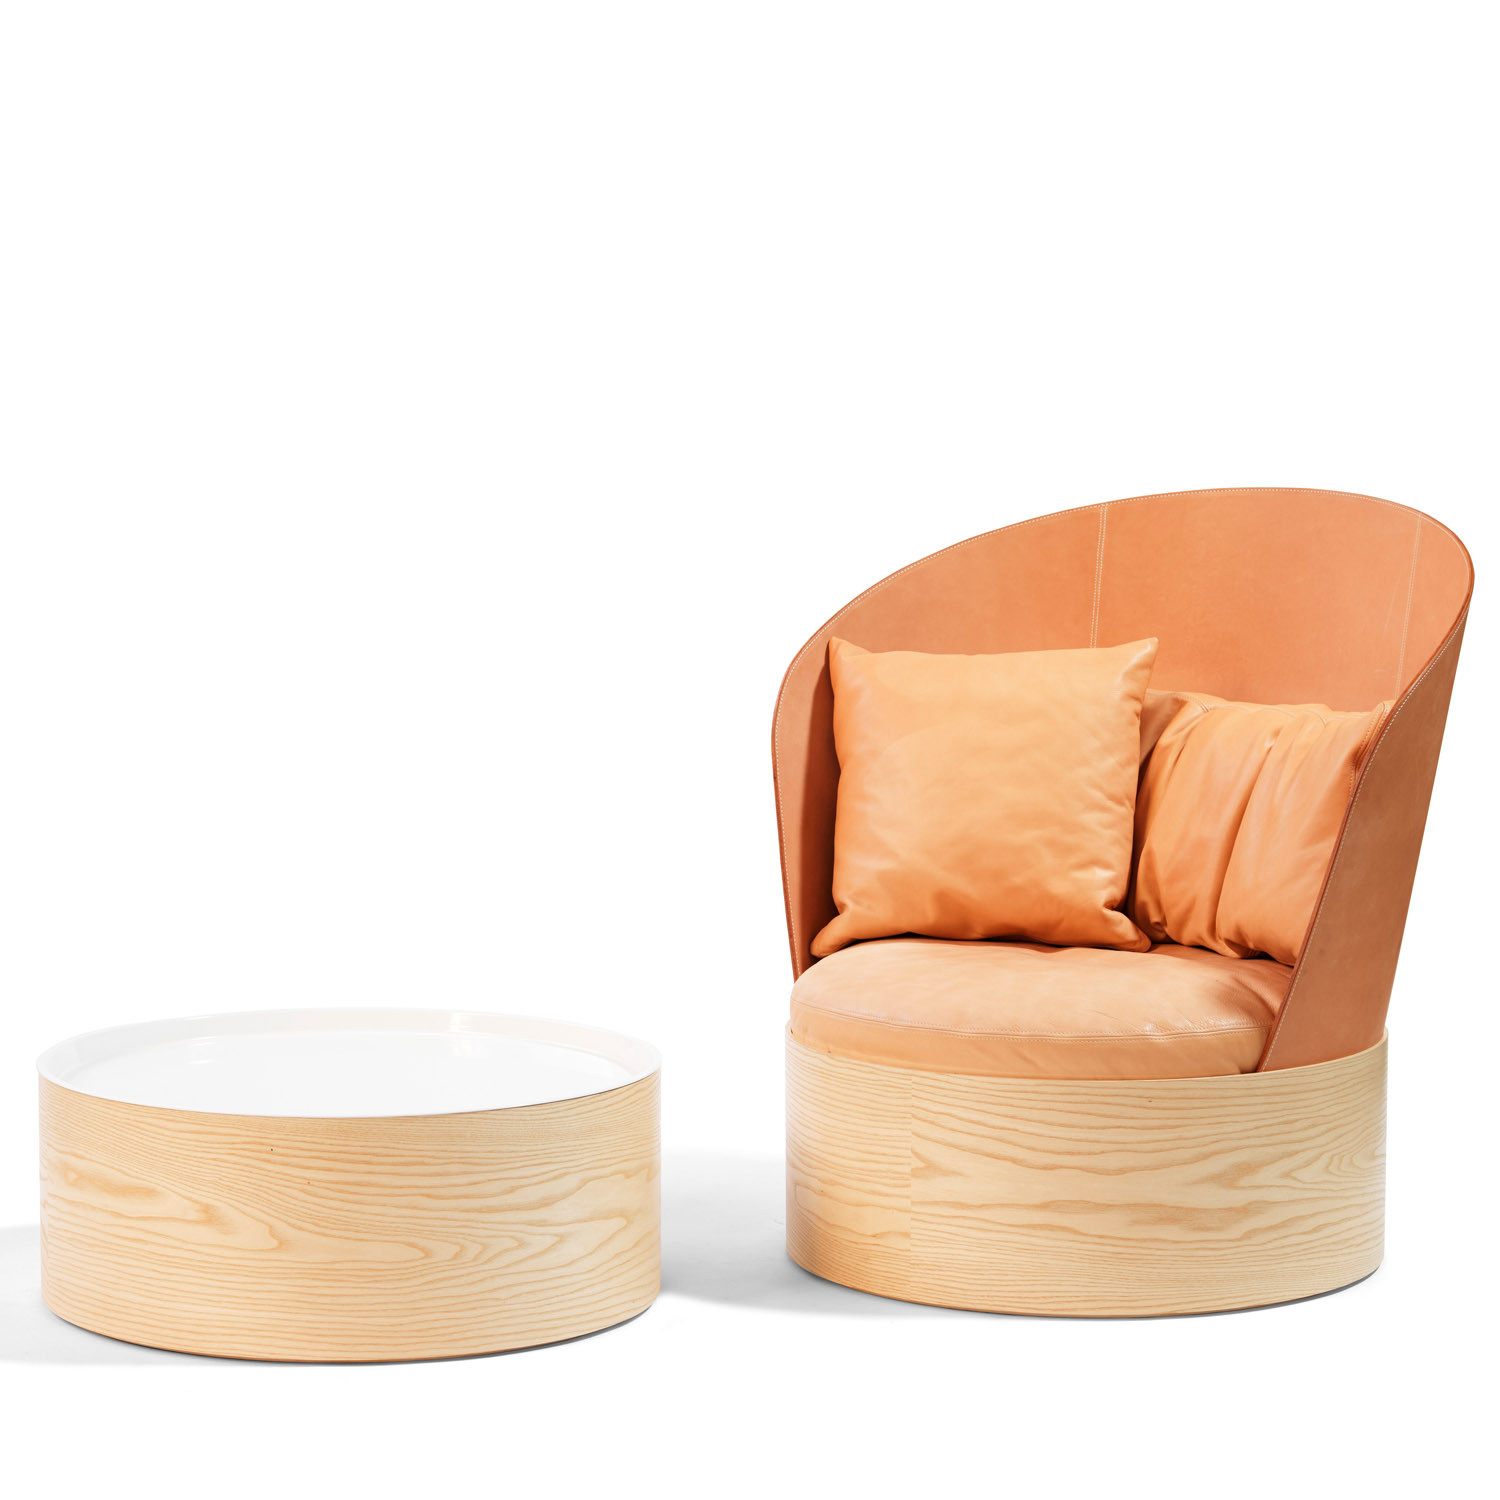 L25 Coffee Table and B25 Easy Chair by Bla Station